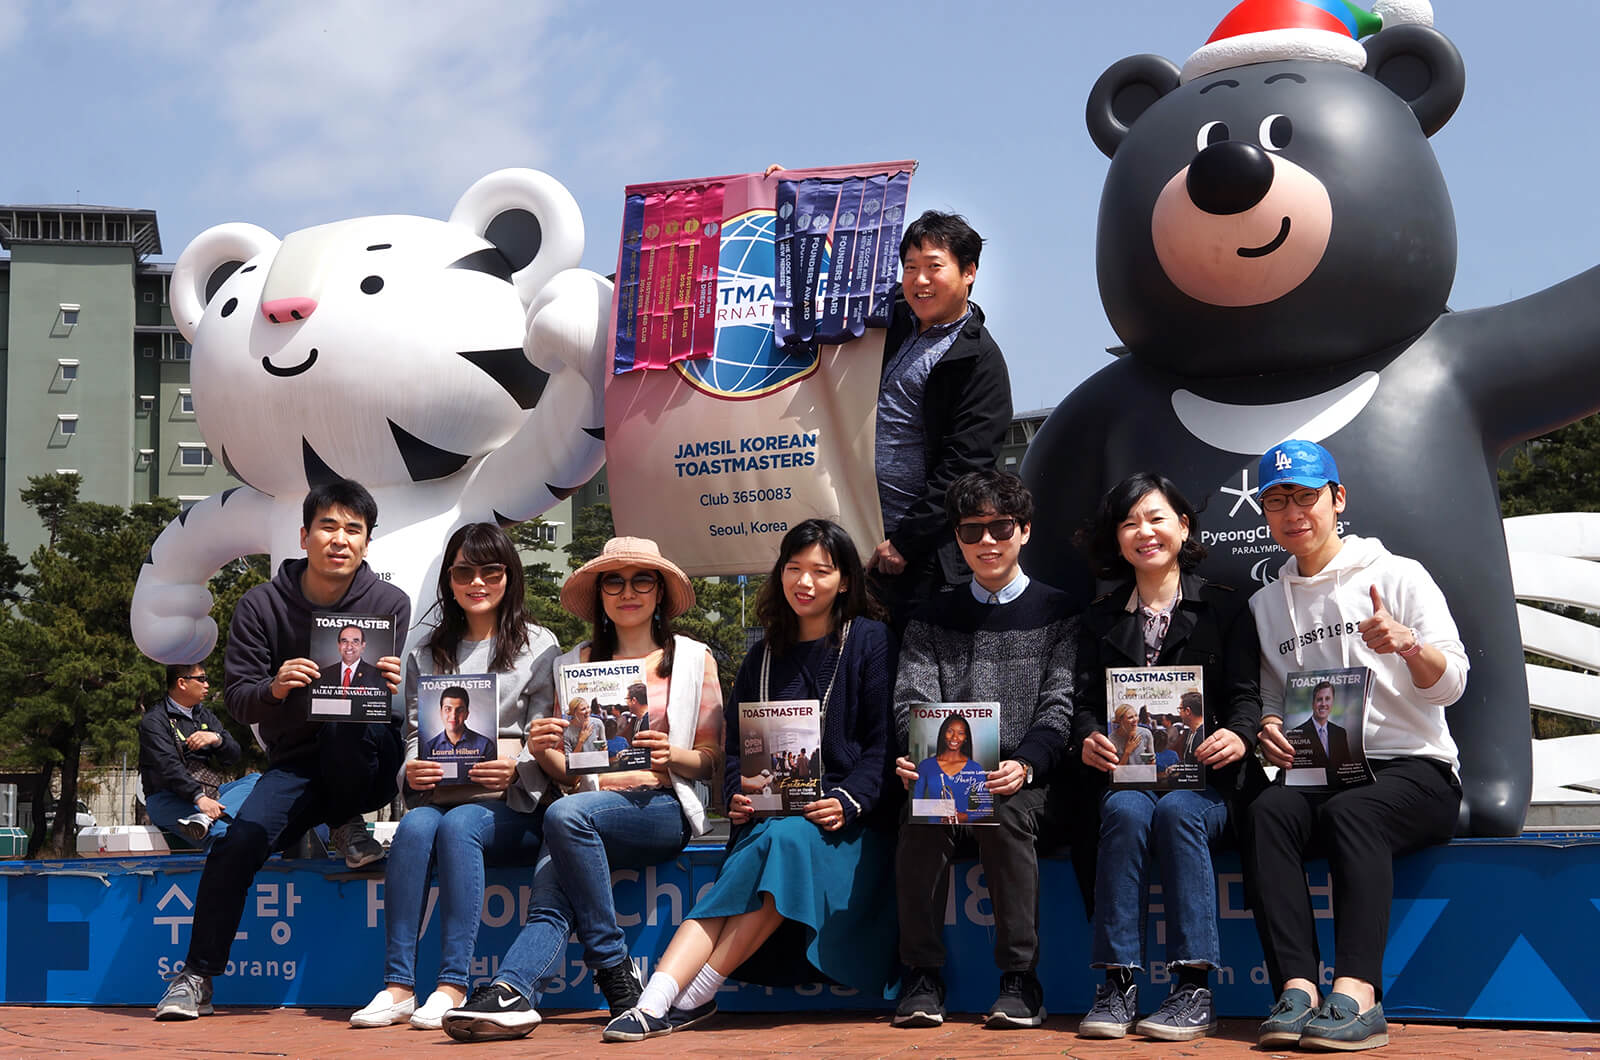 Members of the Jamsil Korean Toastmasters club in Seoul, Korea, visit Ganneung, the site of the 2018 PyeongChang Winter Olympics.